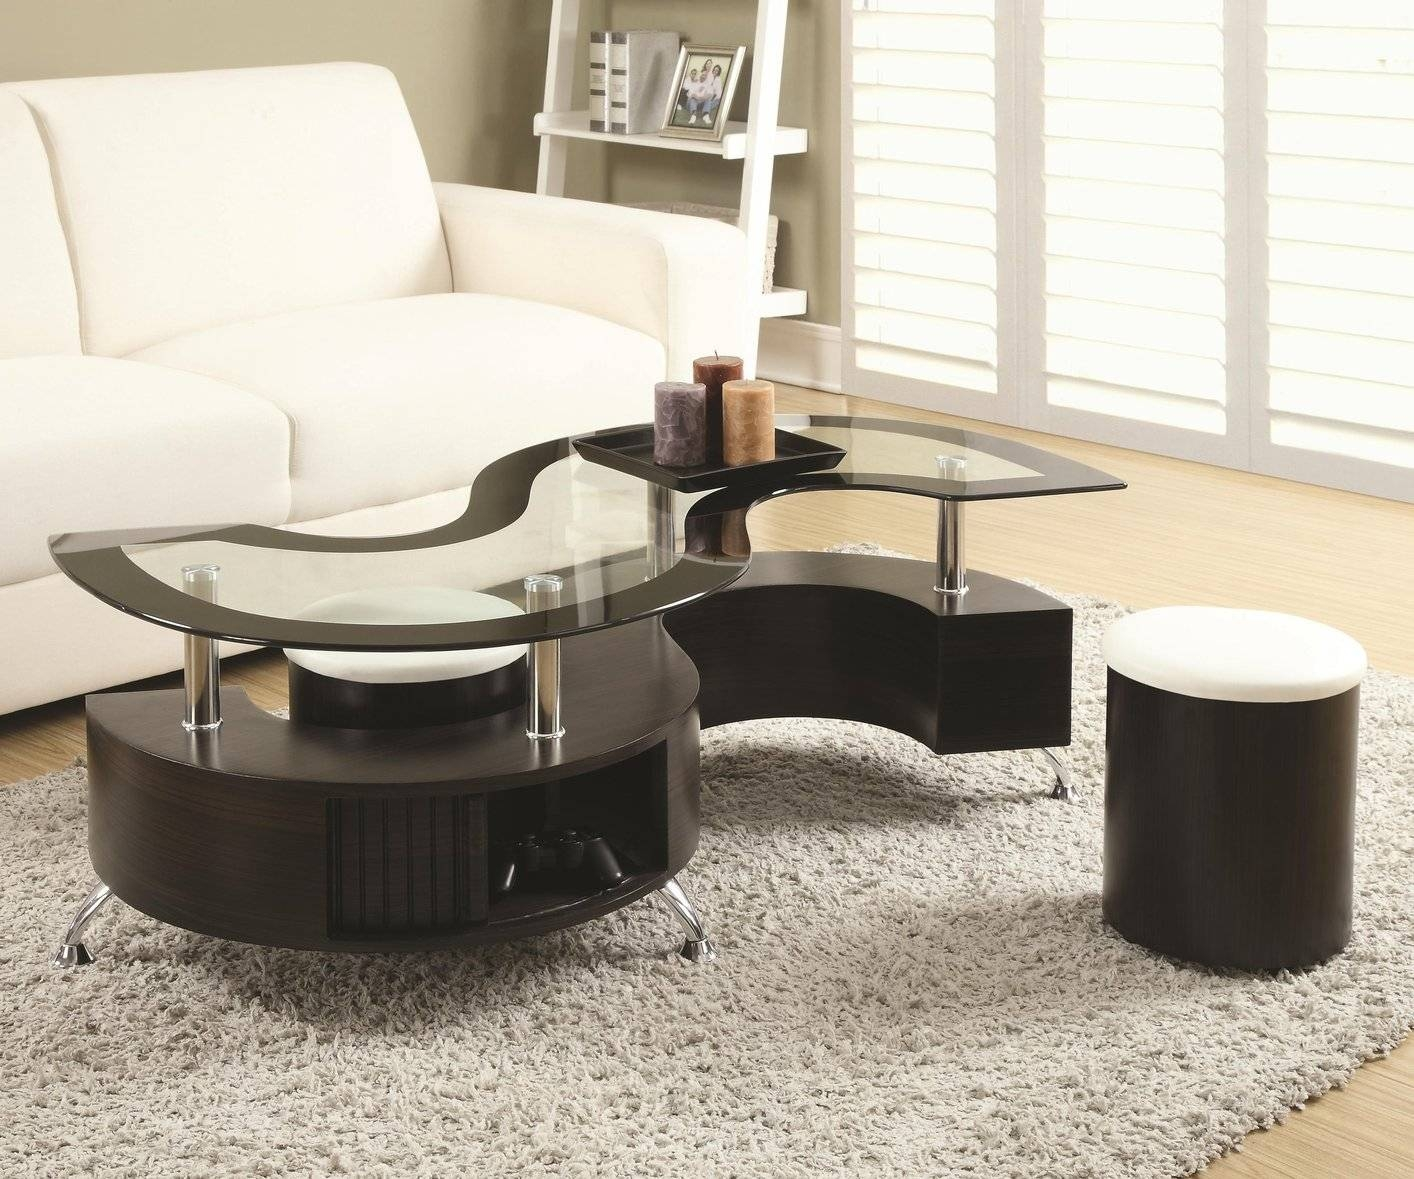 Coaster 720218 Brown Glass Coffee Table - Steal-A-Sofa Furniture regarding Coffee Table With Chairs (Image 9 of 30)